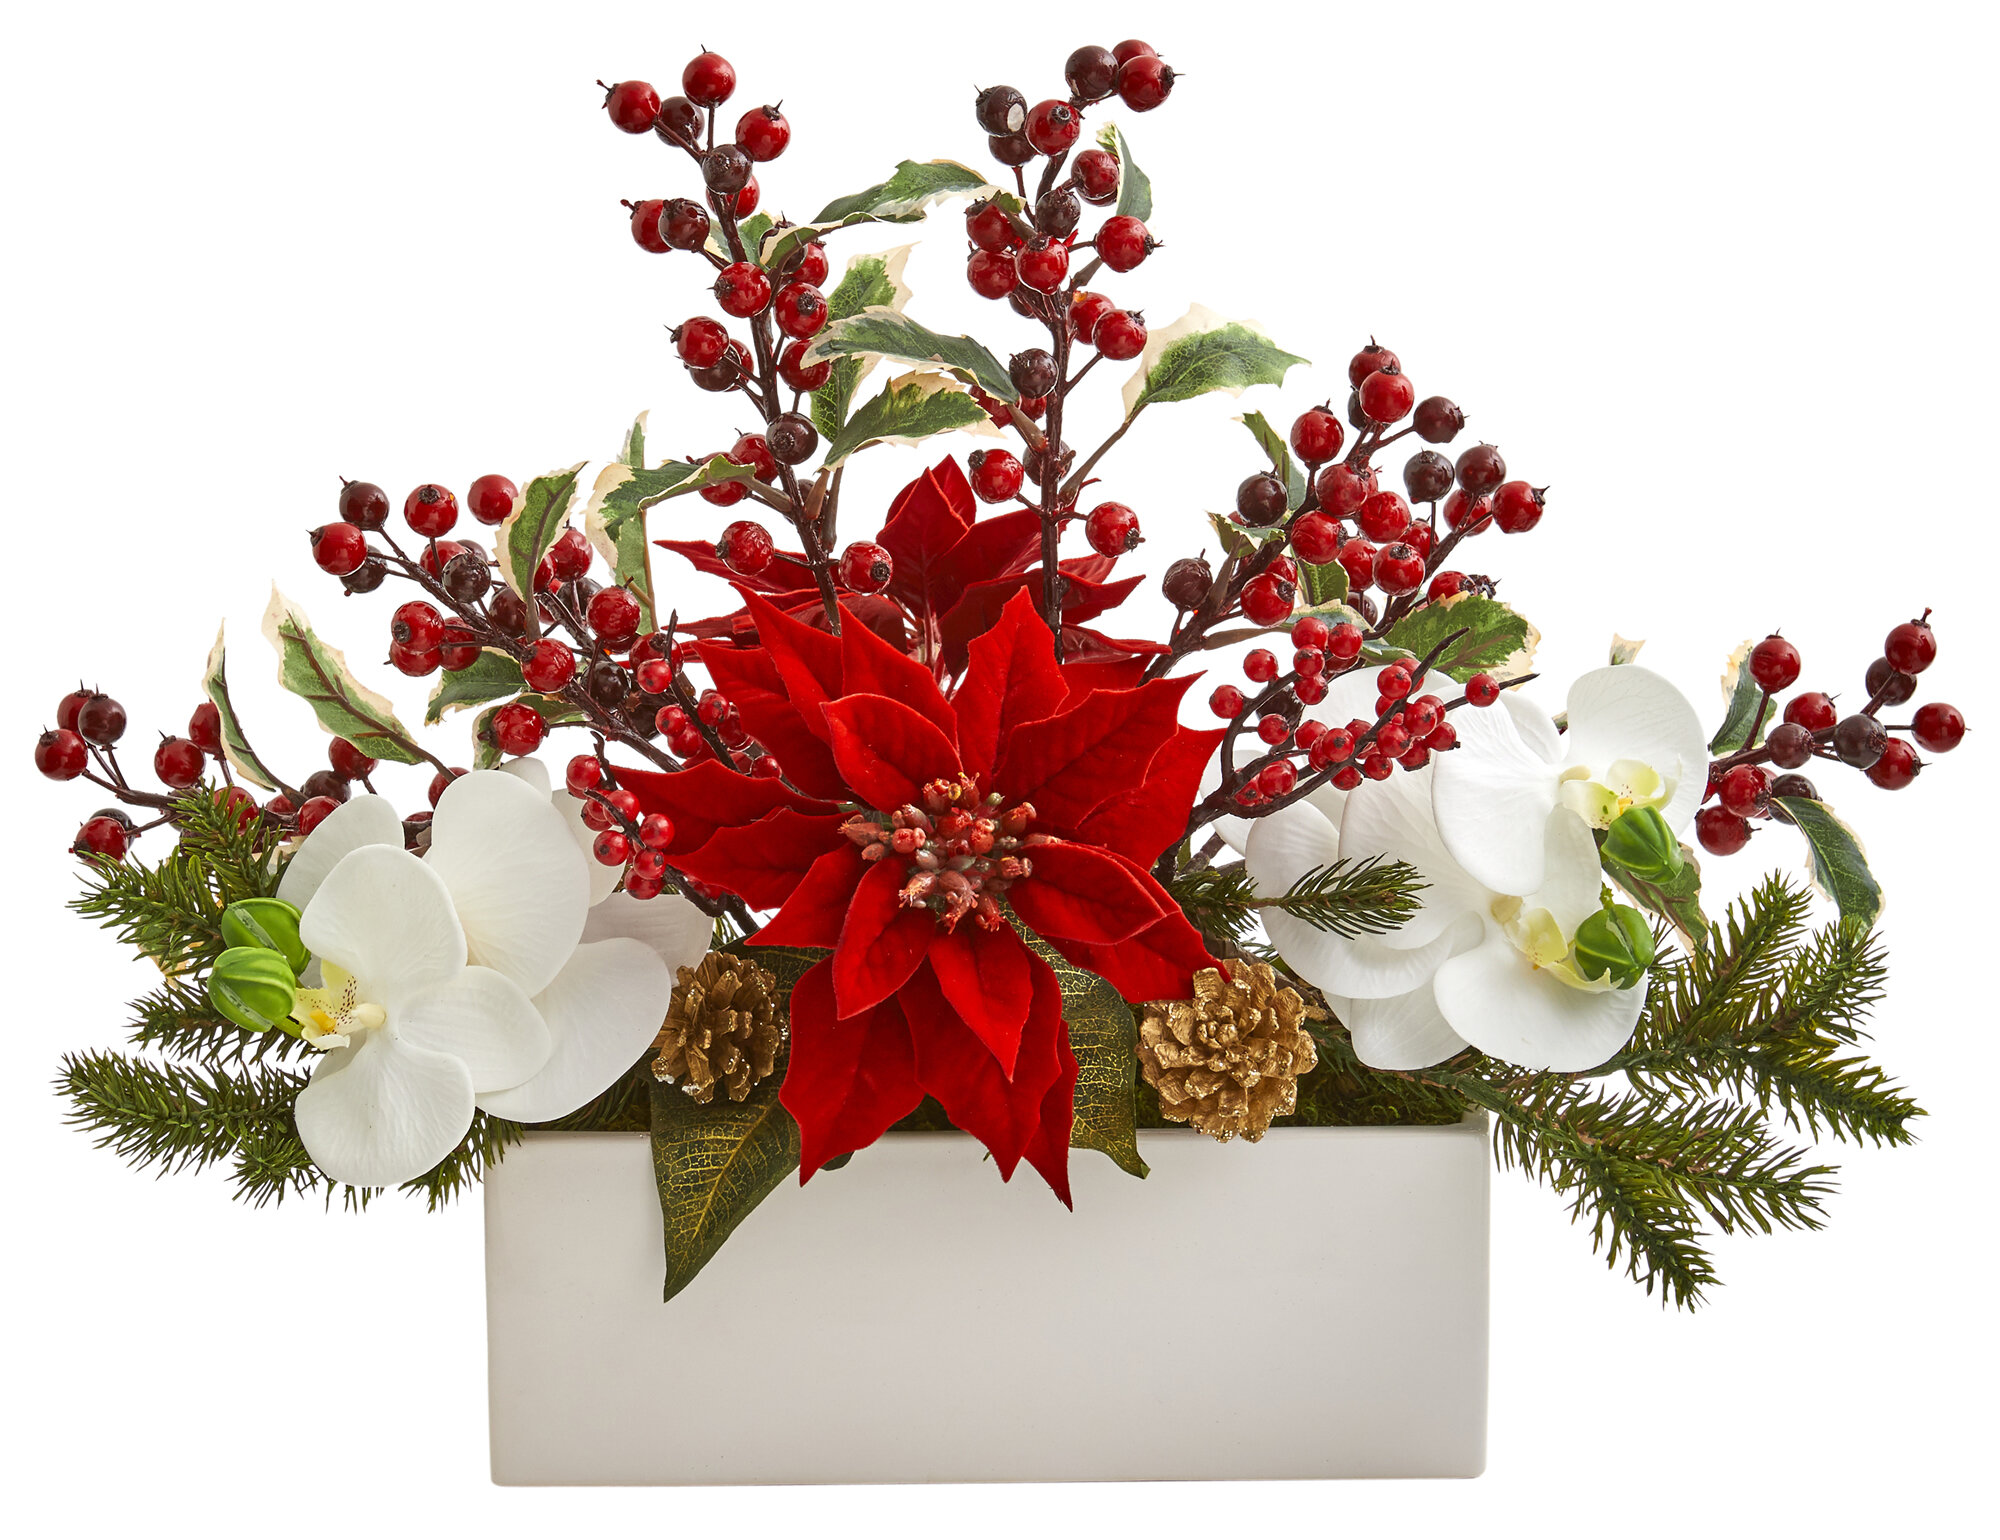 Christmas Flower Arrangements Artificial.Phalaenopsis Orchid Poinsettia And Holly Berry Artificial Mixed Floral Arrangement In Planter